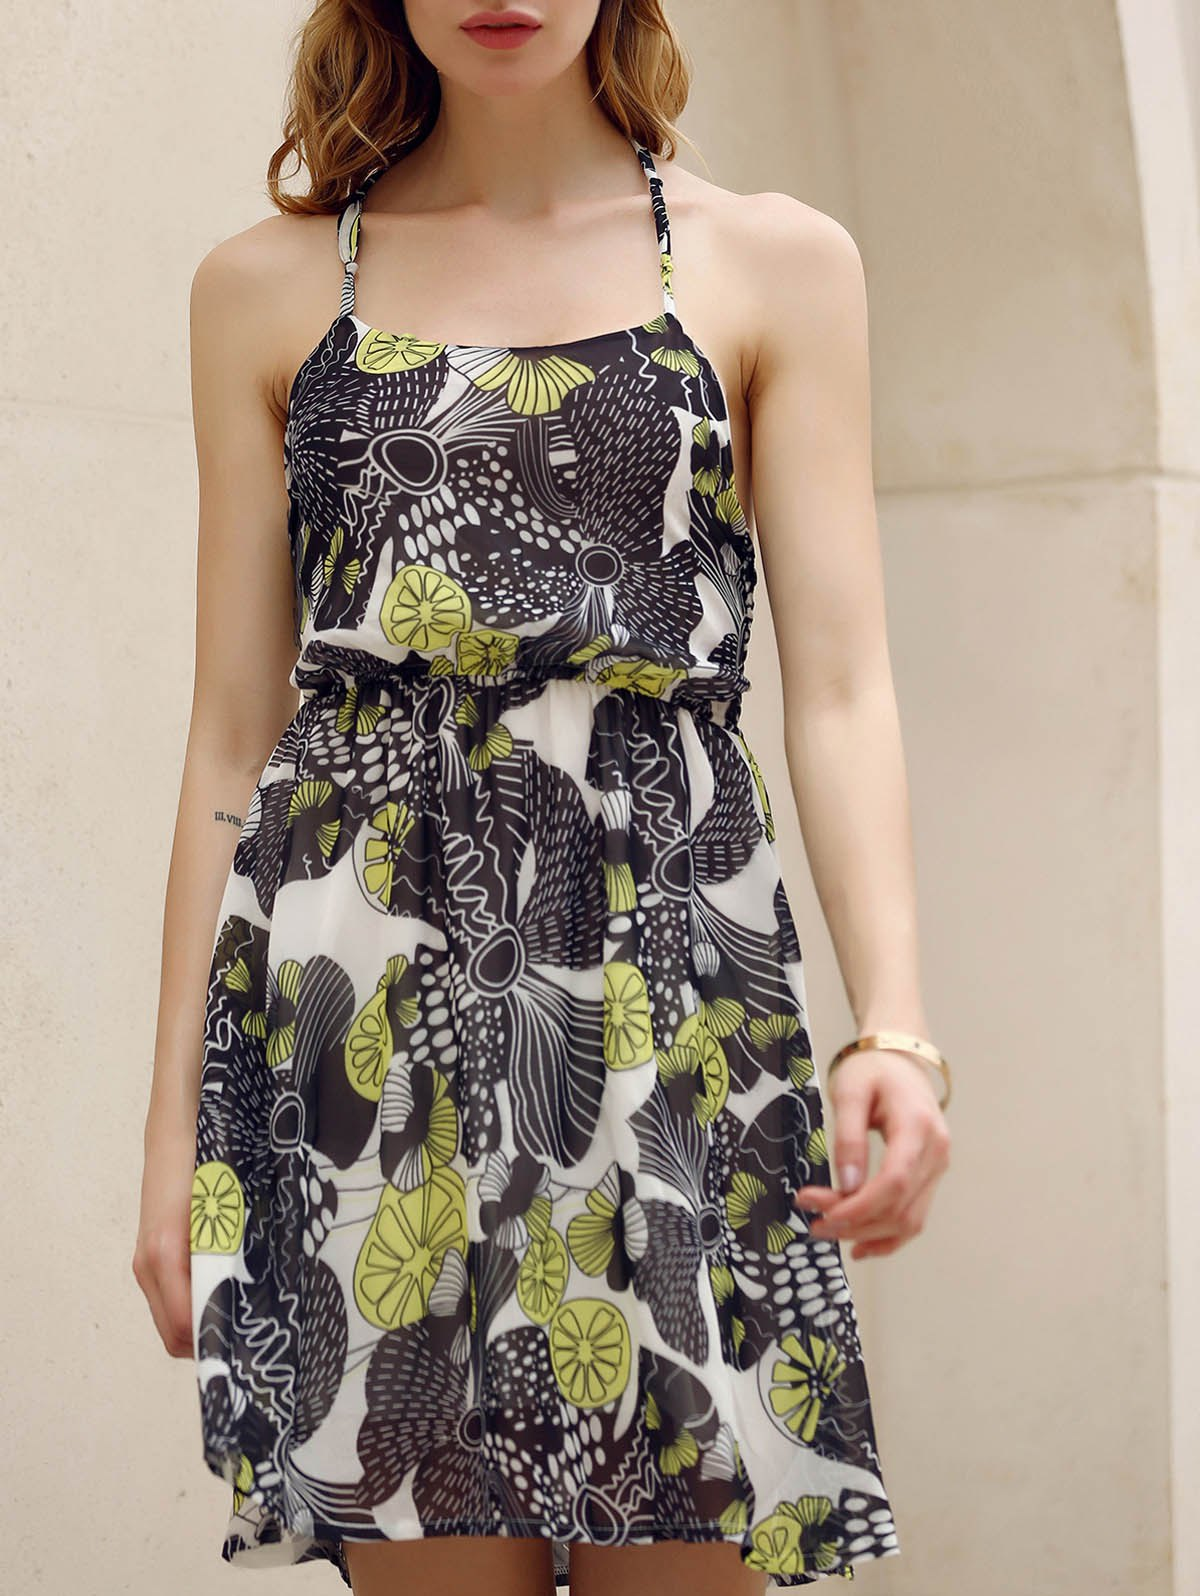 Chic Halter Sleeveless Flounced Printed Women's Chiffon Dress - COLORMIX L